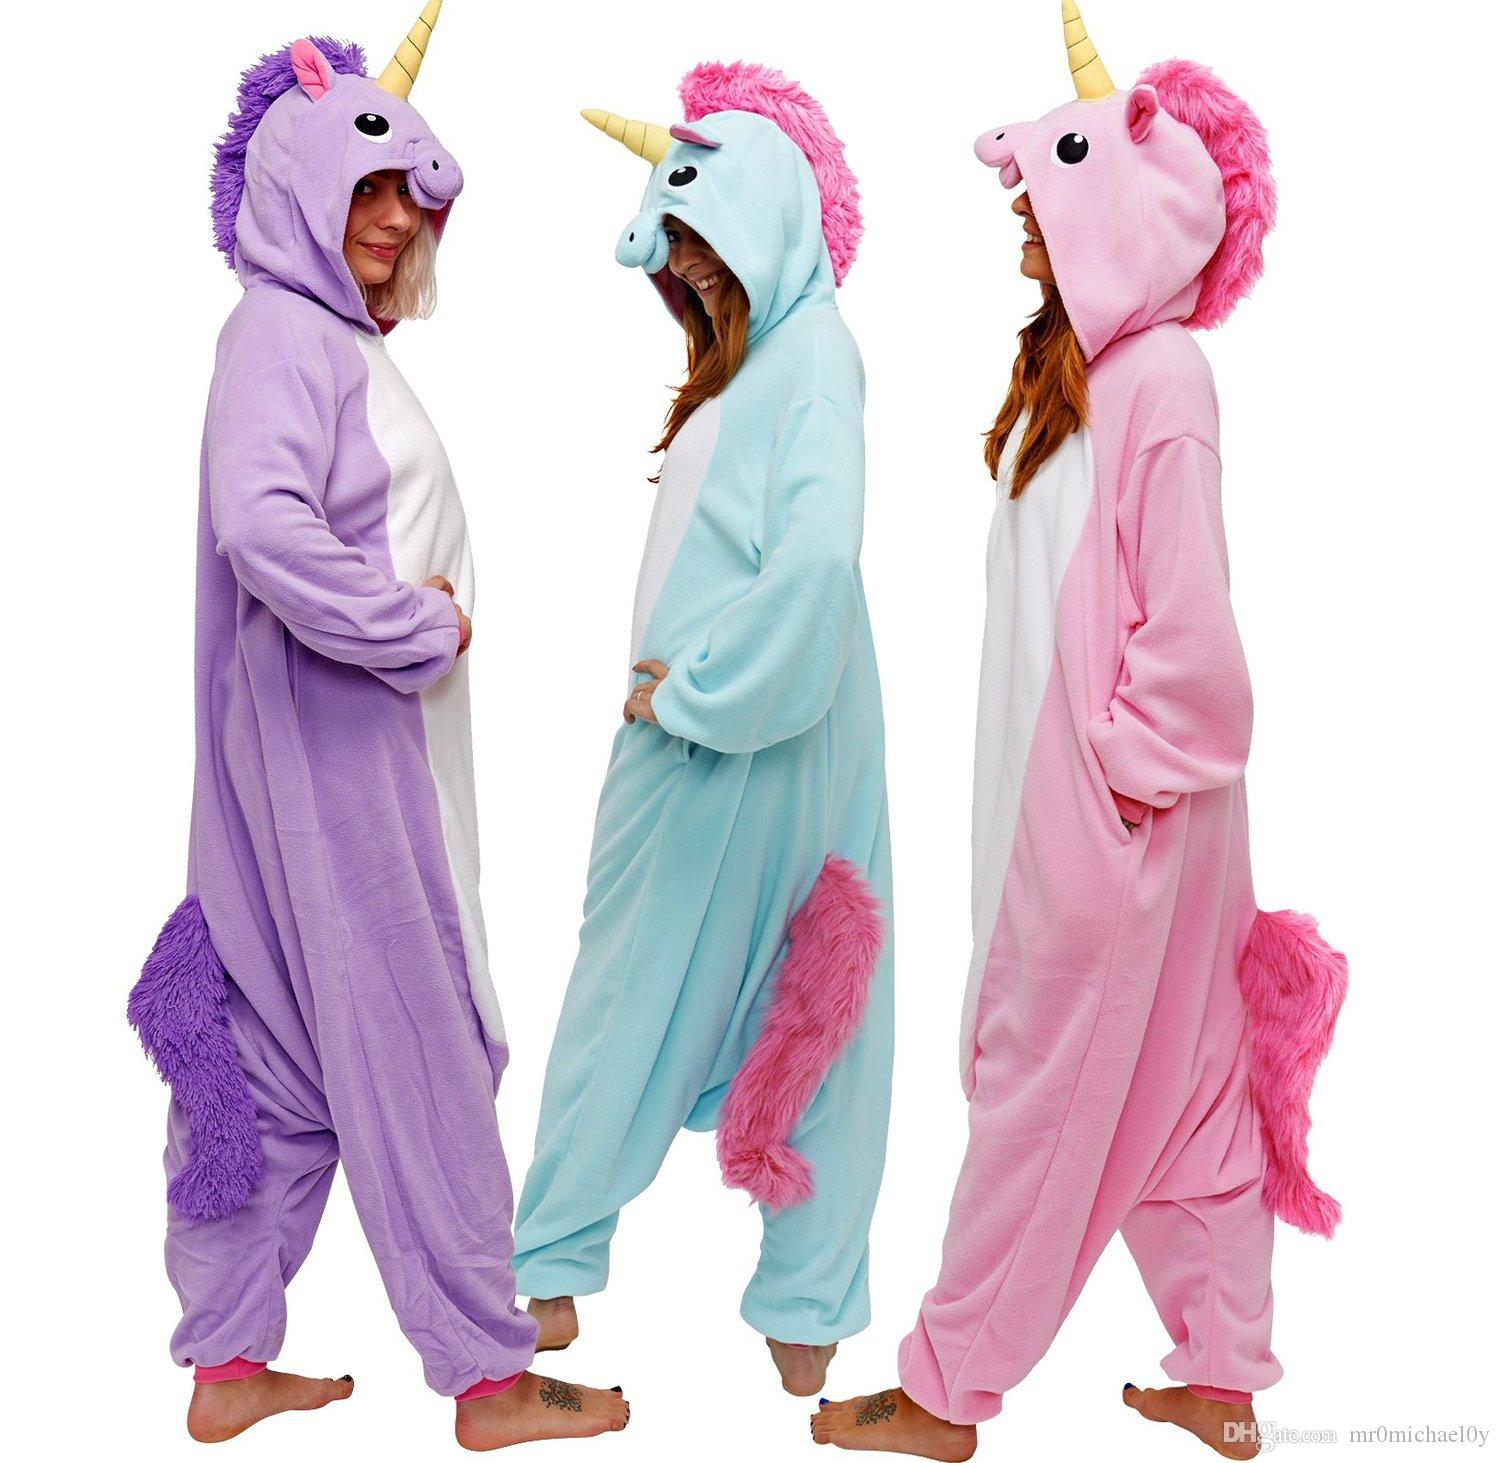 2019 HappyBuy Kigurumi Animal Onesie Rainbow Pony Adult Onesie Pajamas  Hooded All In One Sleepwear Animal Pajamas Fleece One Piece Pajama From  Mr0michael0y de5197a5f